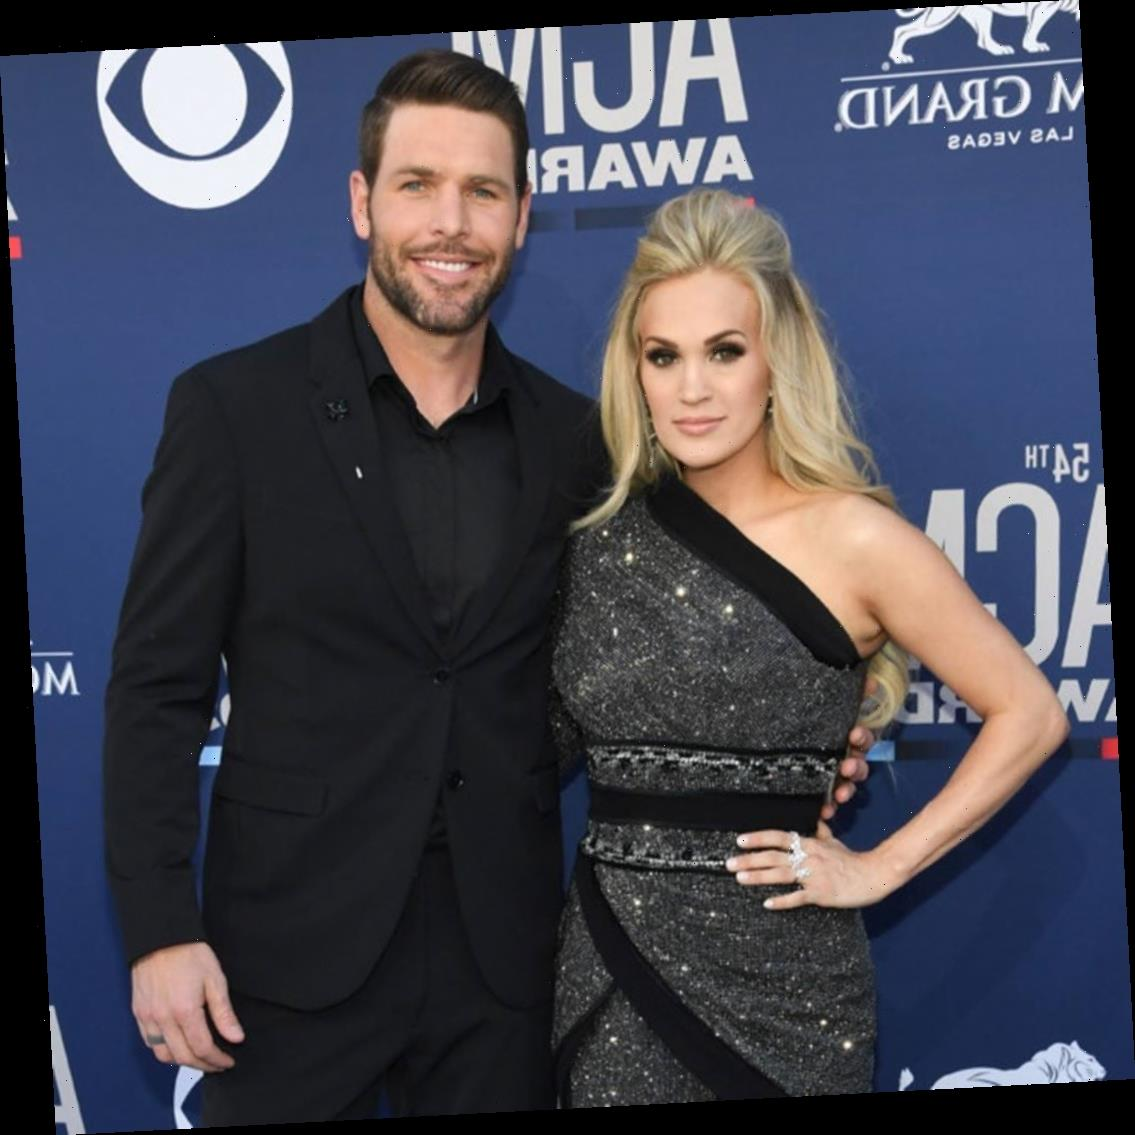 Carrie Underwood Apologizes to Mike Fisher and Their Kids for Not Mentioning Them in ACMs Speech